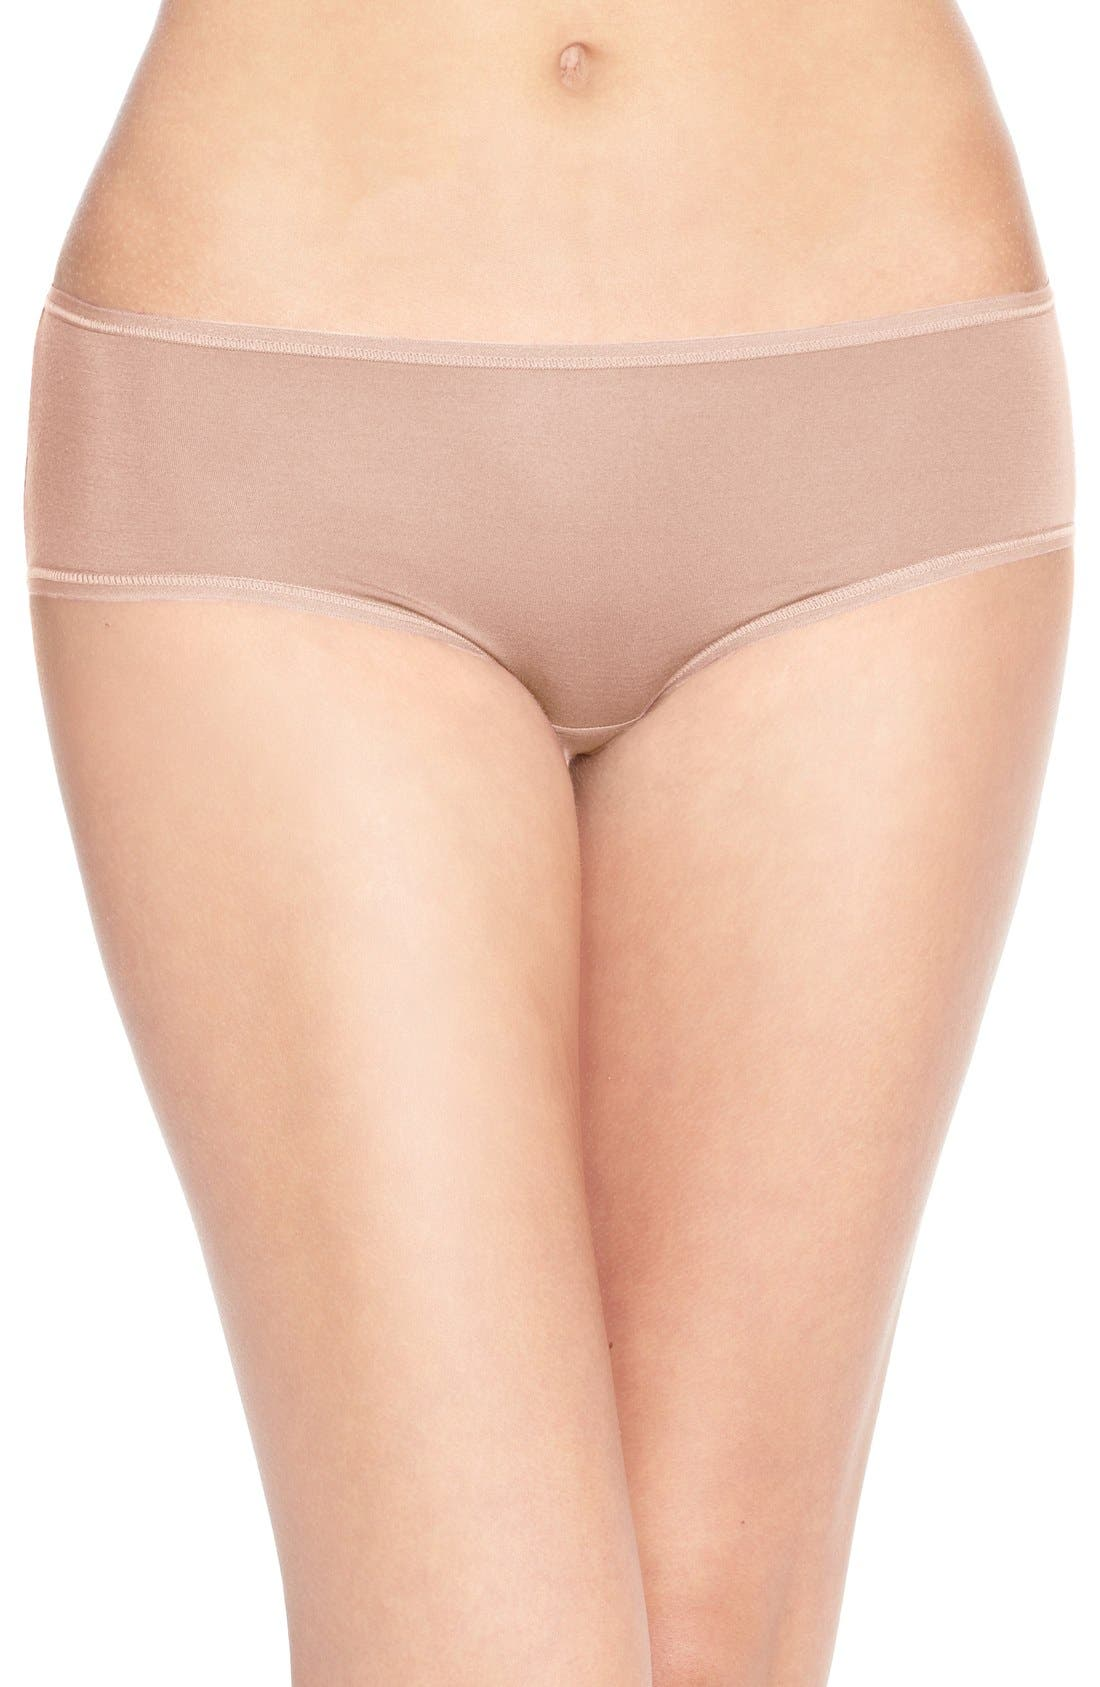 Alternate Image 1 Selected - Felina 'Sublime' Boyshorts (3 for $33)